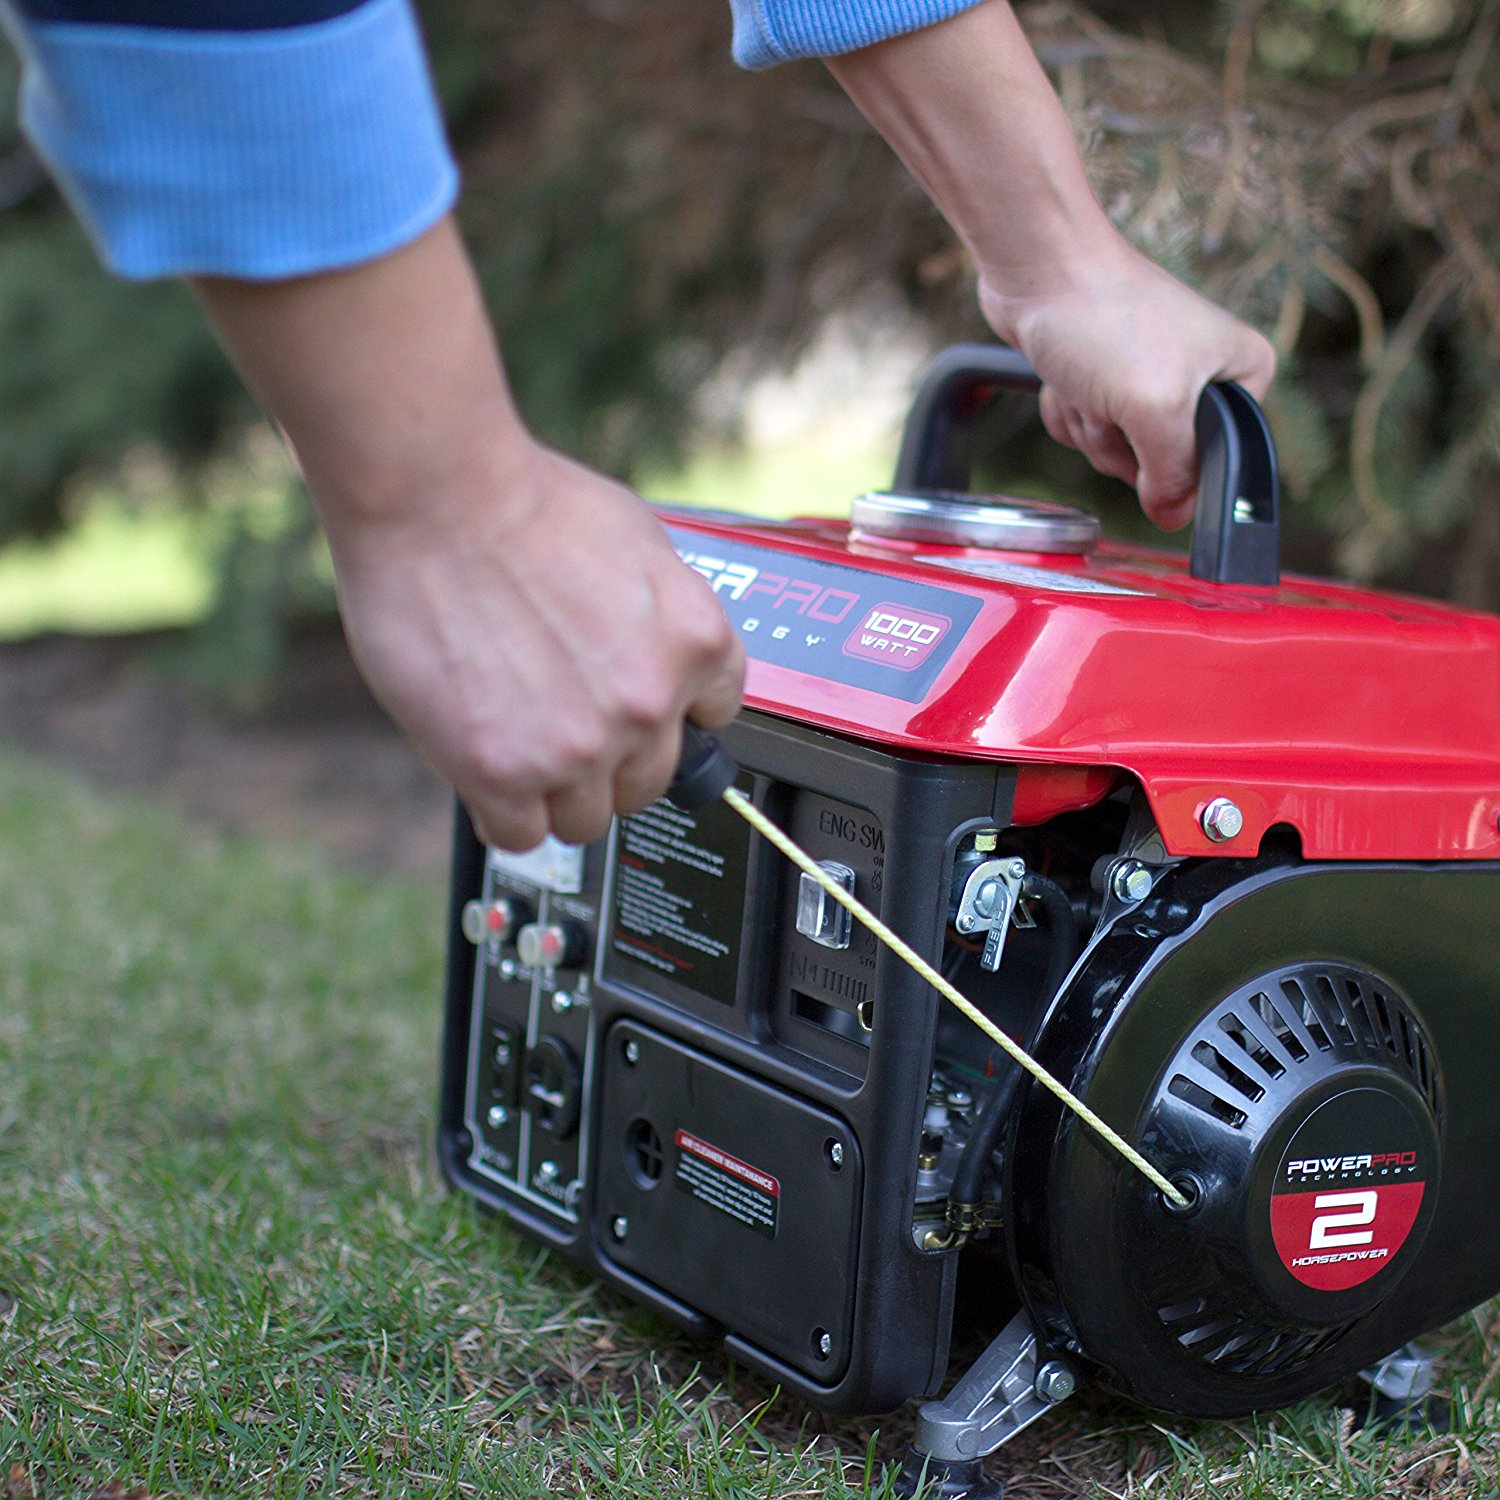 Portable Diesel Generator – Is it Worth Having